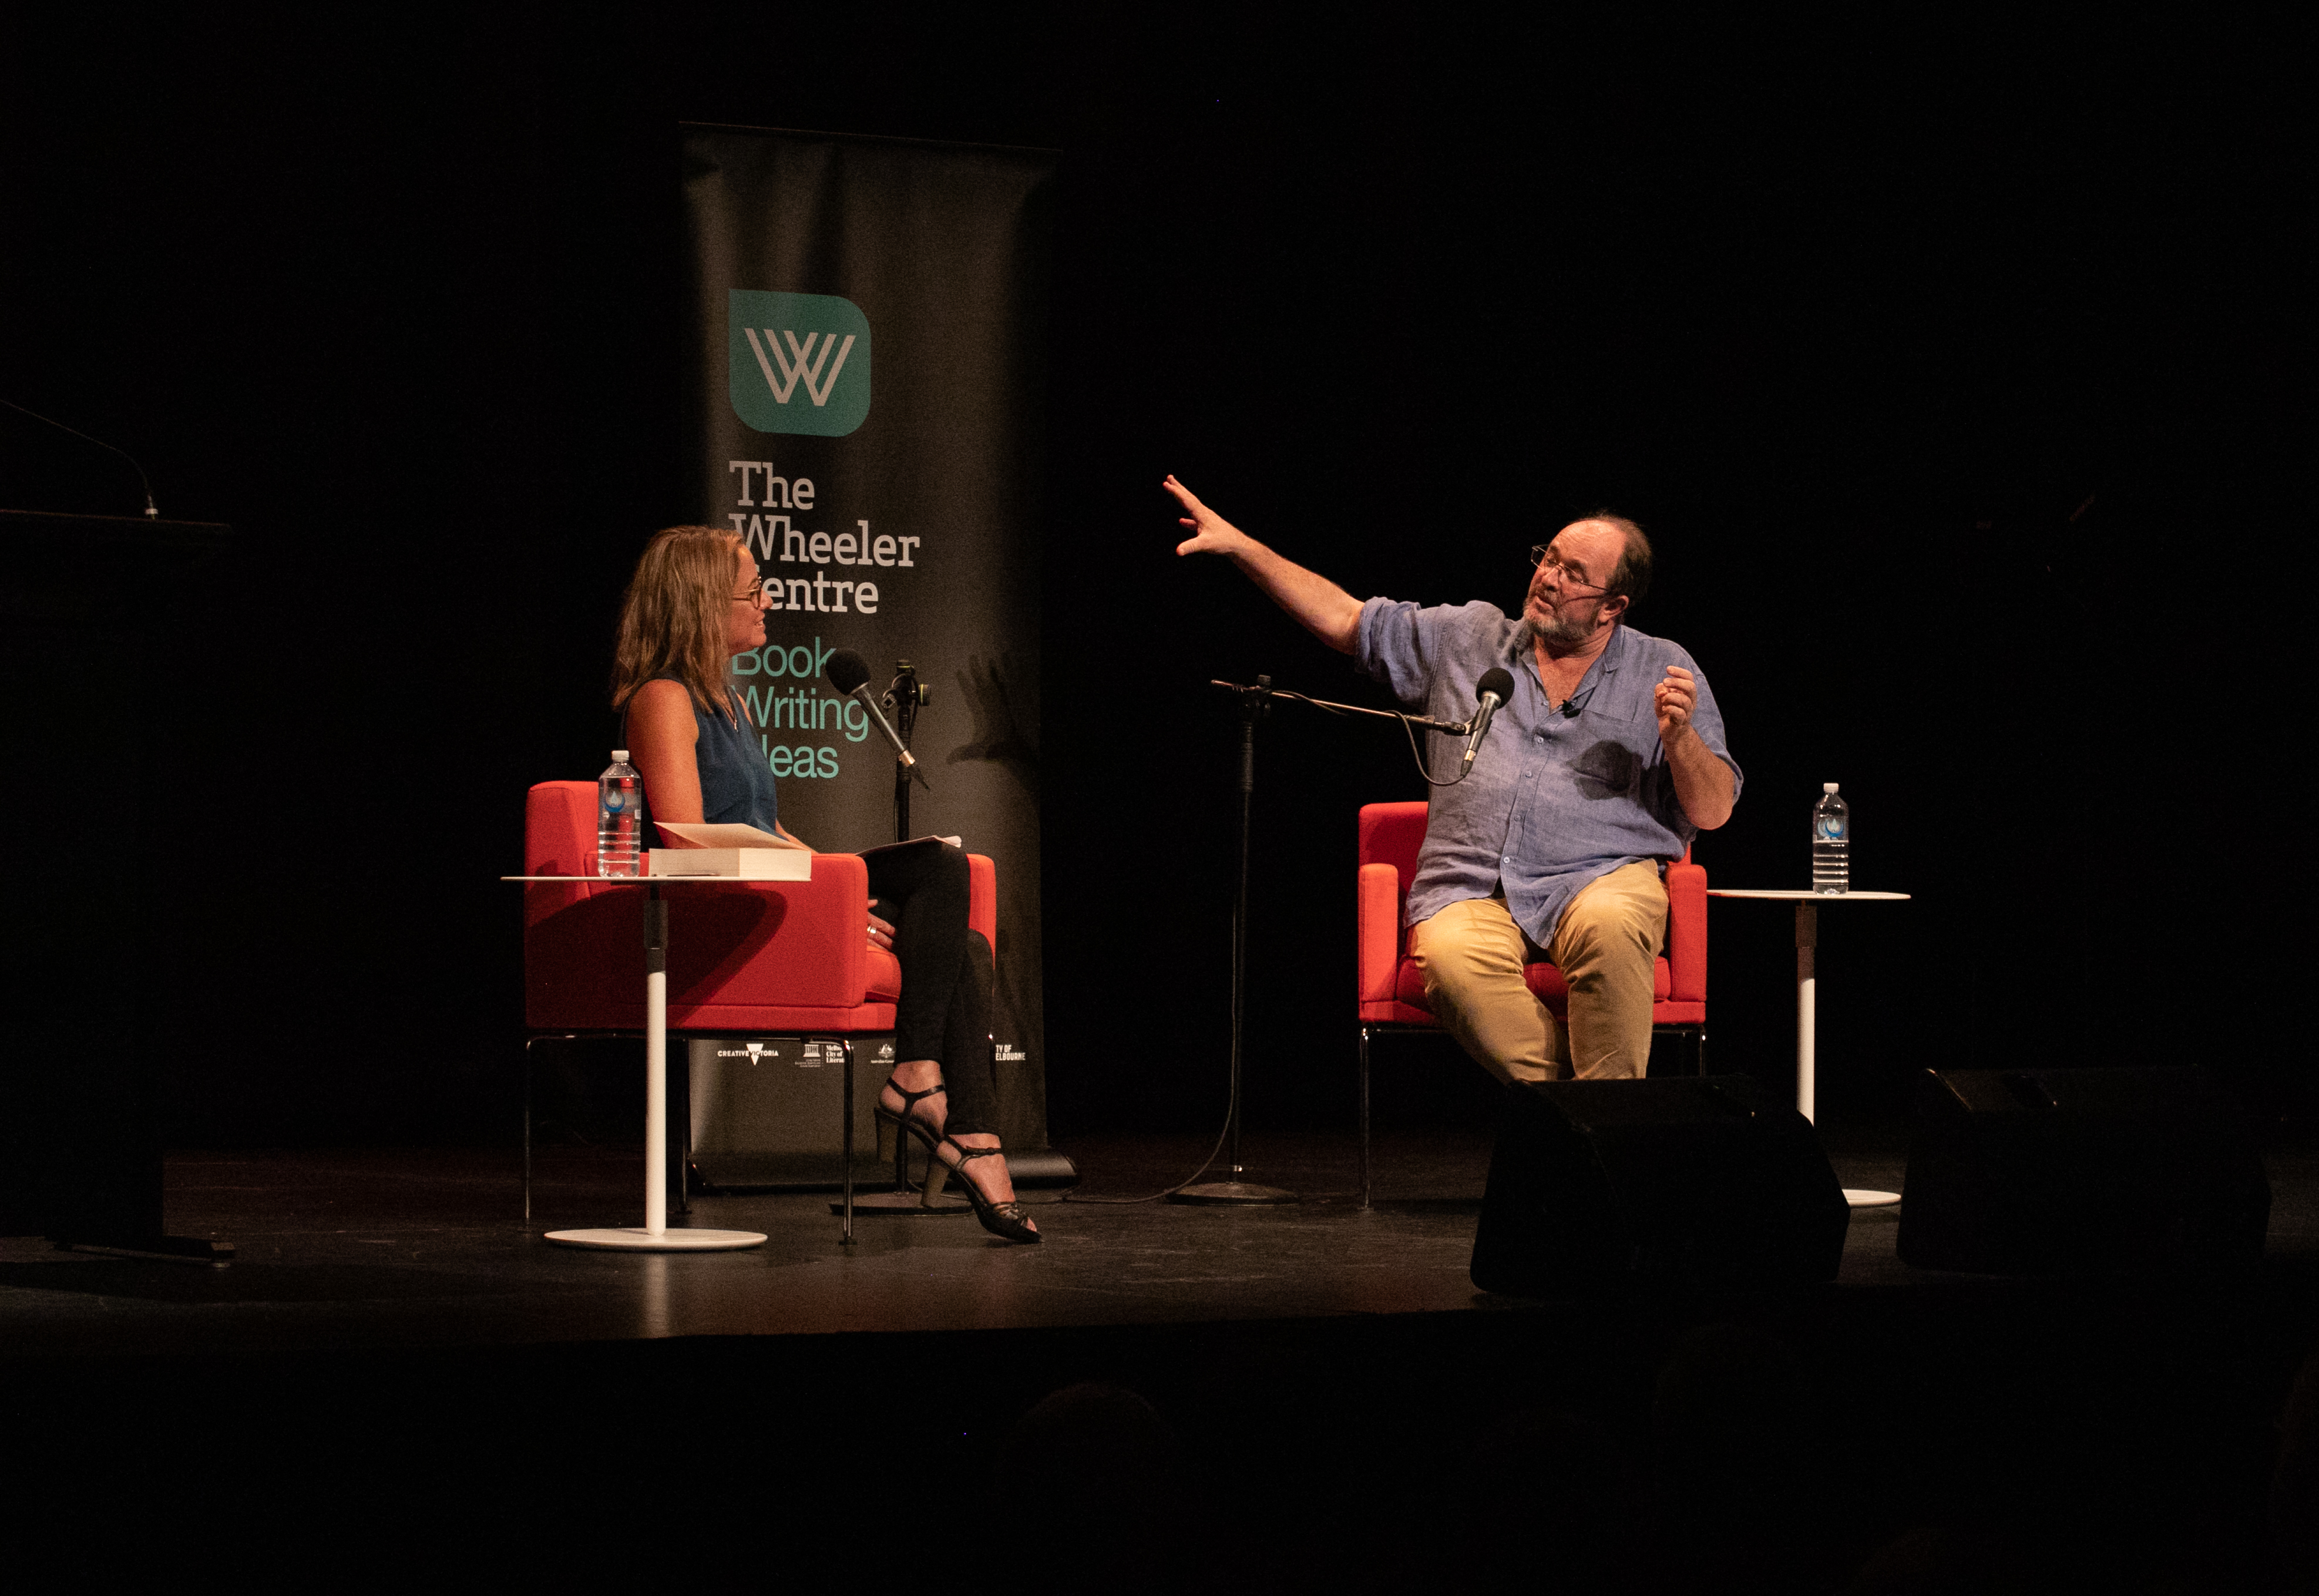 Photograph of Clare Wright and William Dalrymple